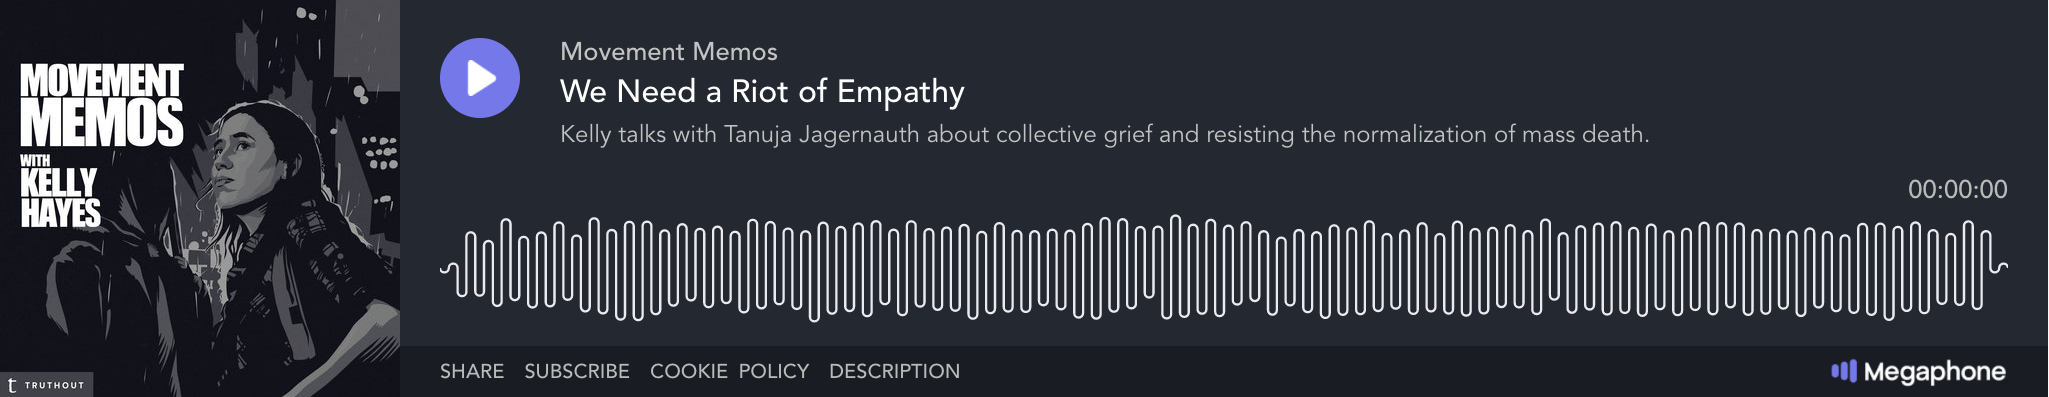 "Image: A screenshot of a podcast player. The pictured episode of ""Movement Memos with Kelly Hayes"" is called ""We Need a Riot of Empathy"" (listen here: https://truthout.org/audio/we-need-a-riot-of-empathy). Its summary reads ""Kelly talks with Tanuja Jagernauth about collective grief and resisting the normalization of mass death."" The image is mostly dark grey, with white and grey text, and a graphical image of Hayes on the left. Courtesy of Kelly Hayes."